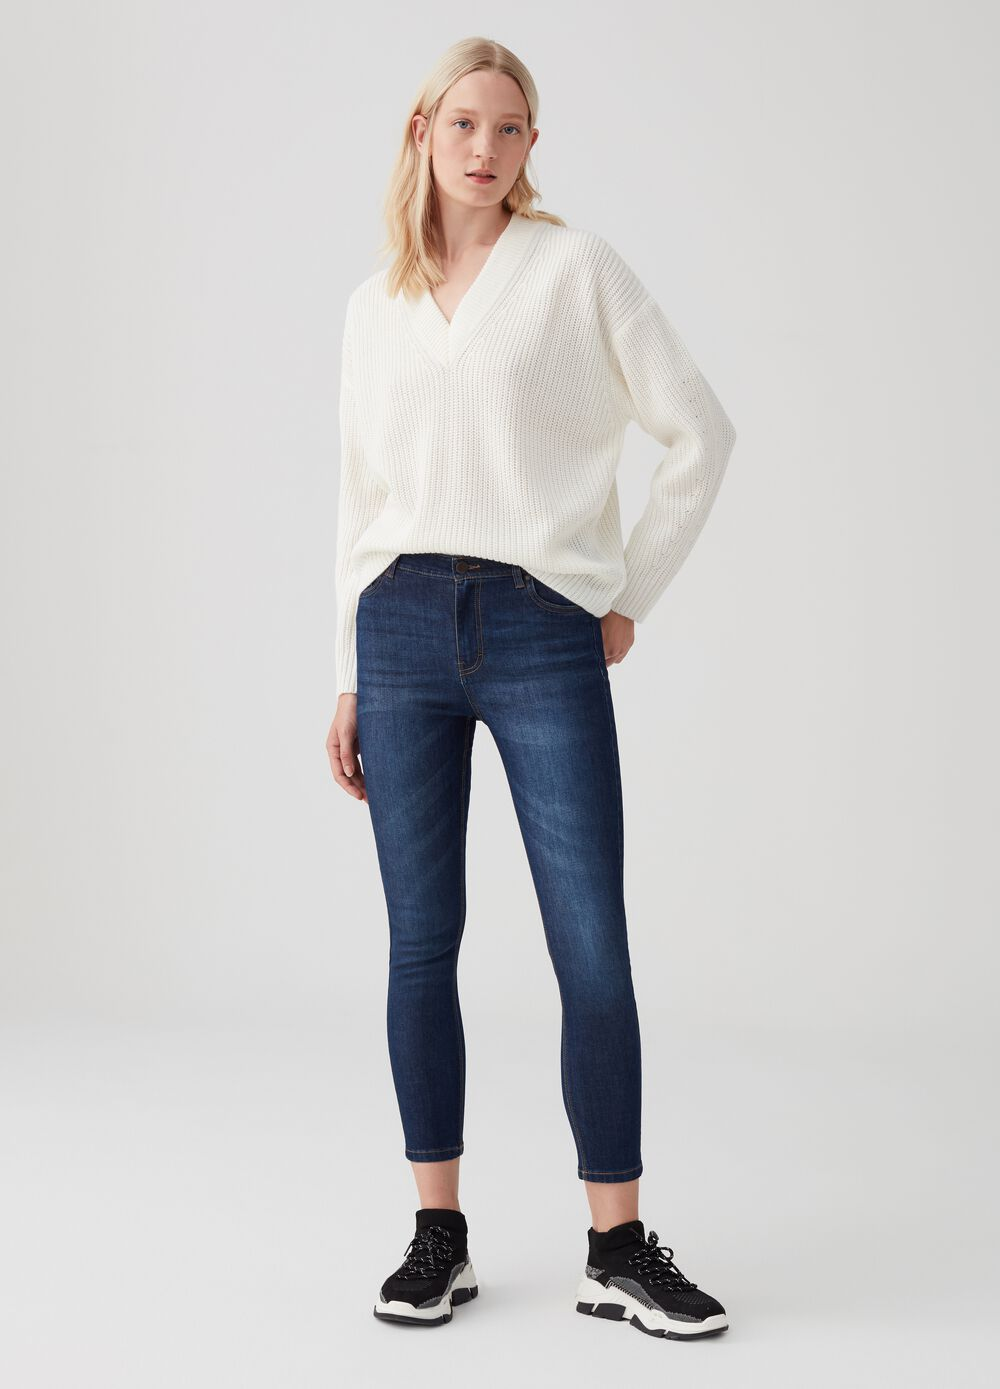 Stretch superskinny jeans with five pockets